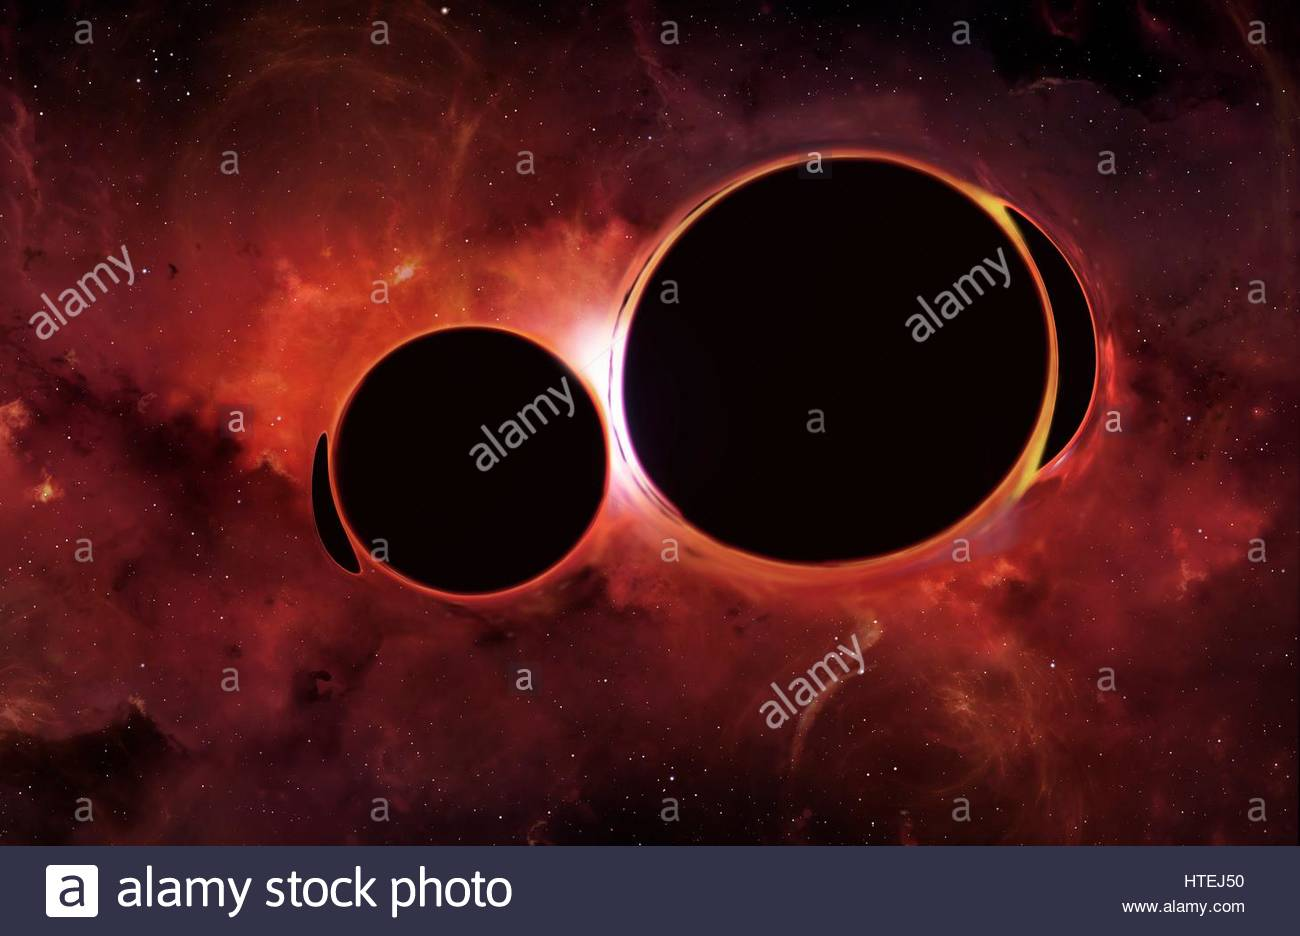 Illustration of two black holes orbiting each other.Eventually black holes will merge,an event that will produce - Stock Image